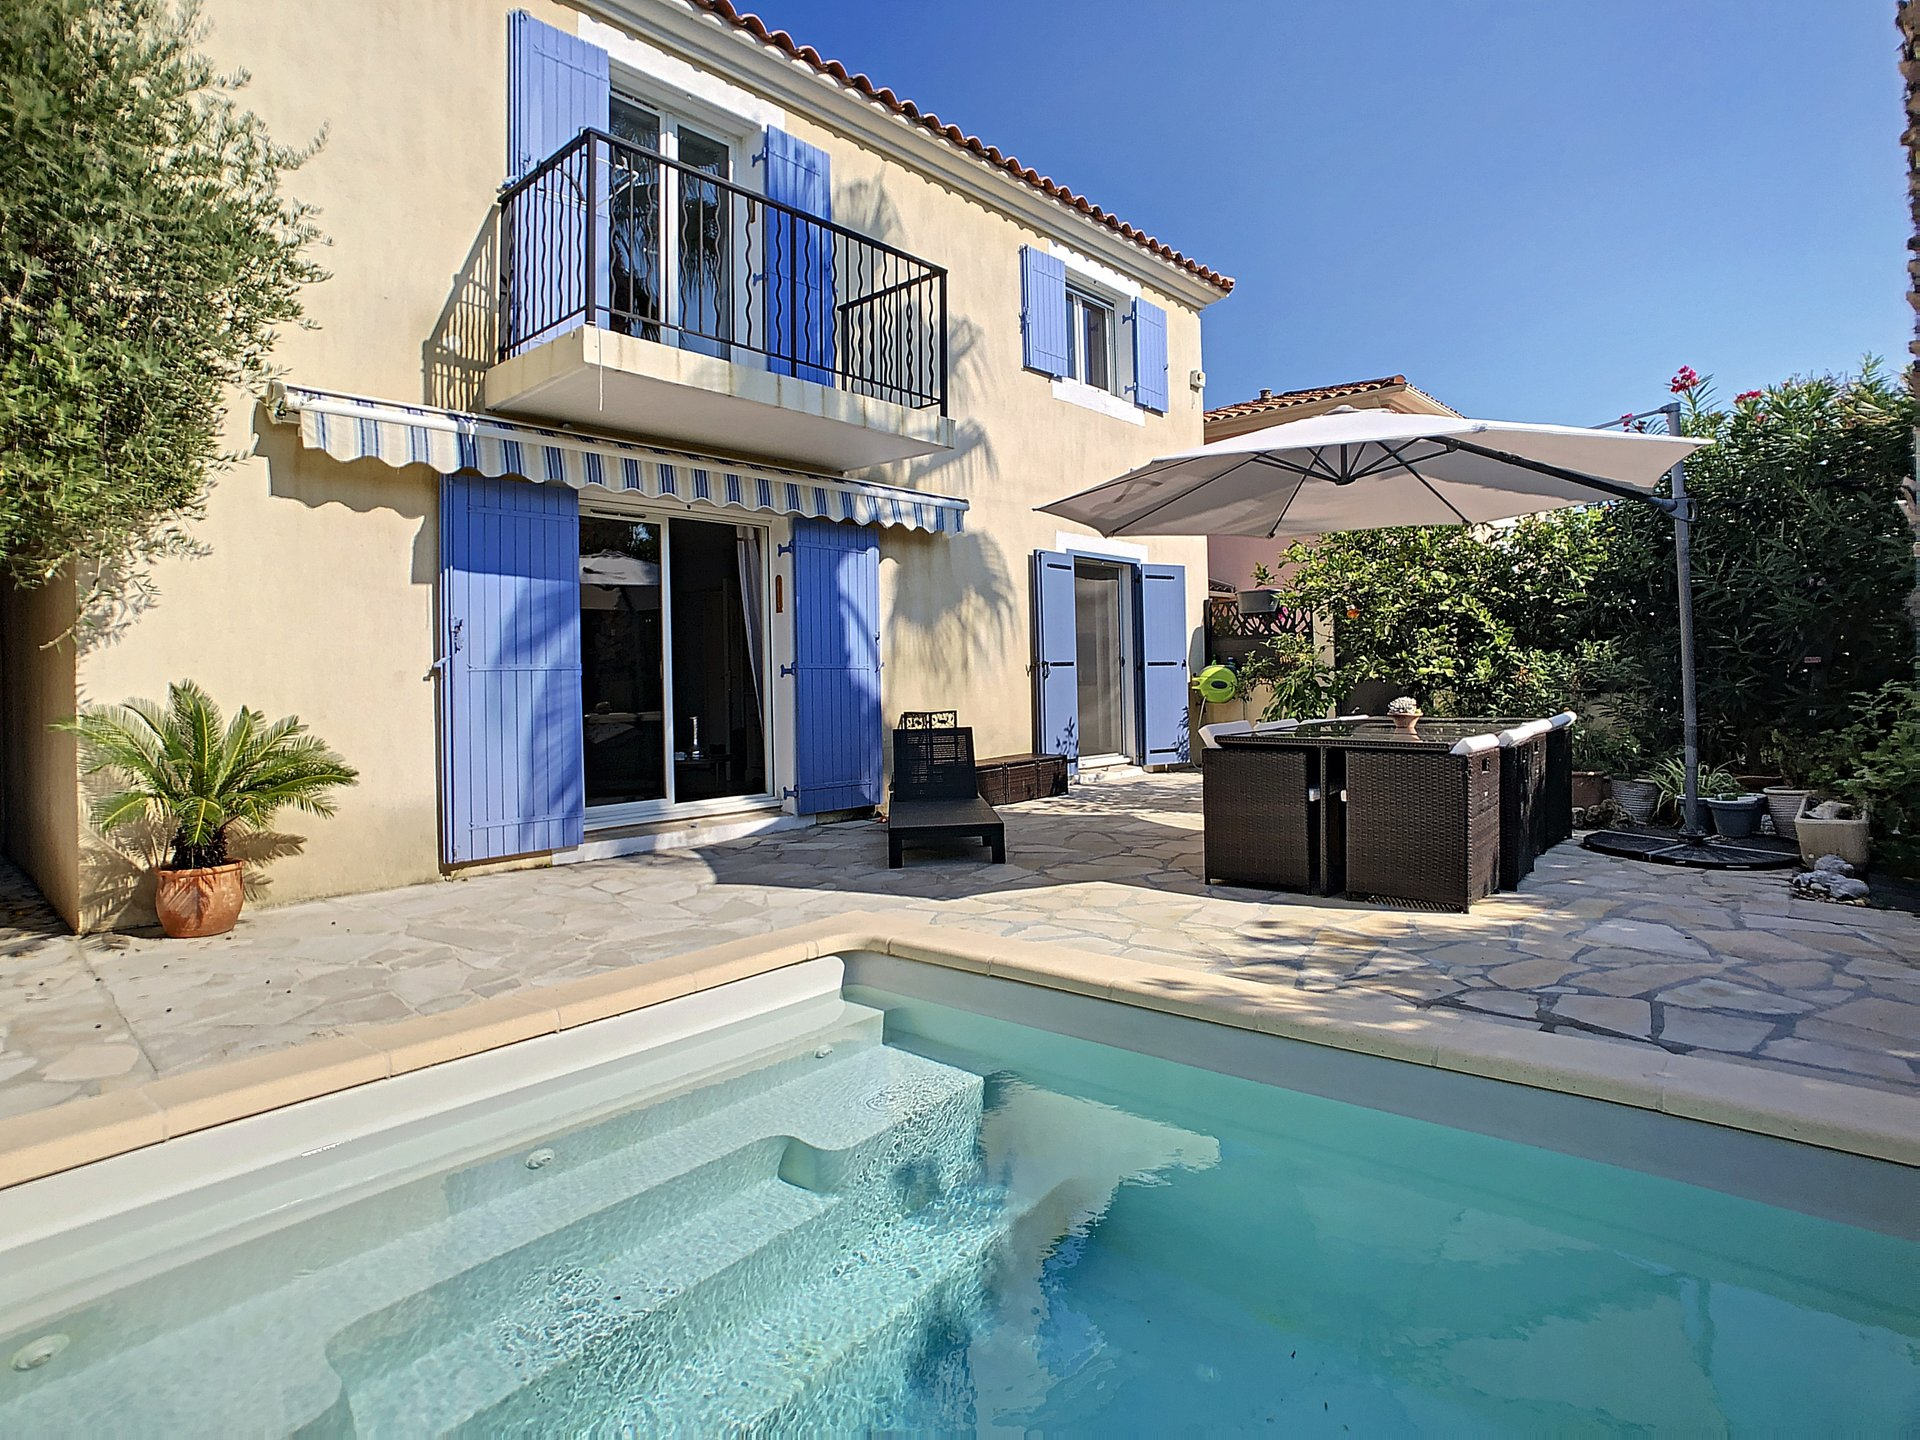 Cannes La Bocca, 3 bedrooms house